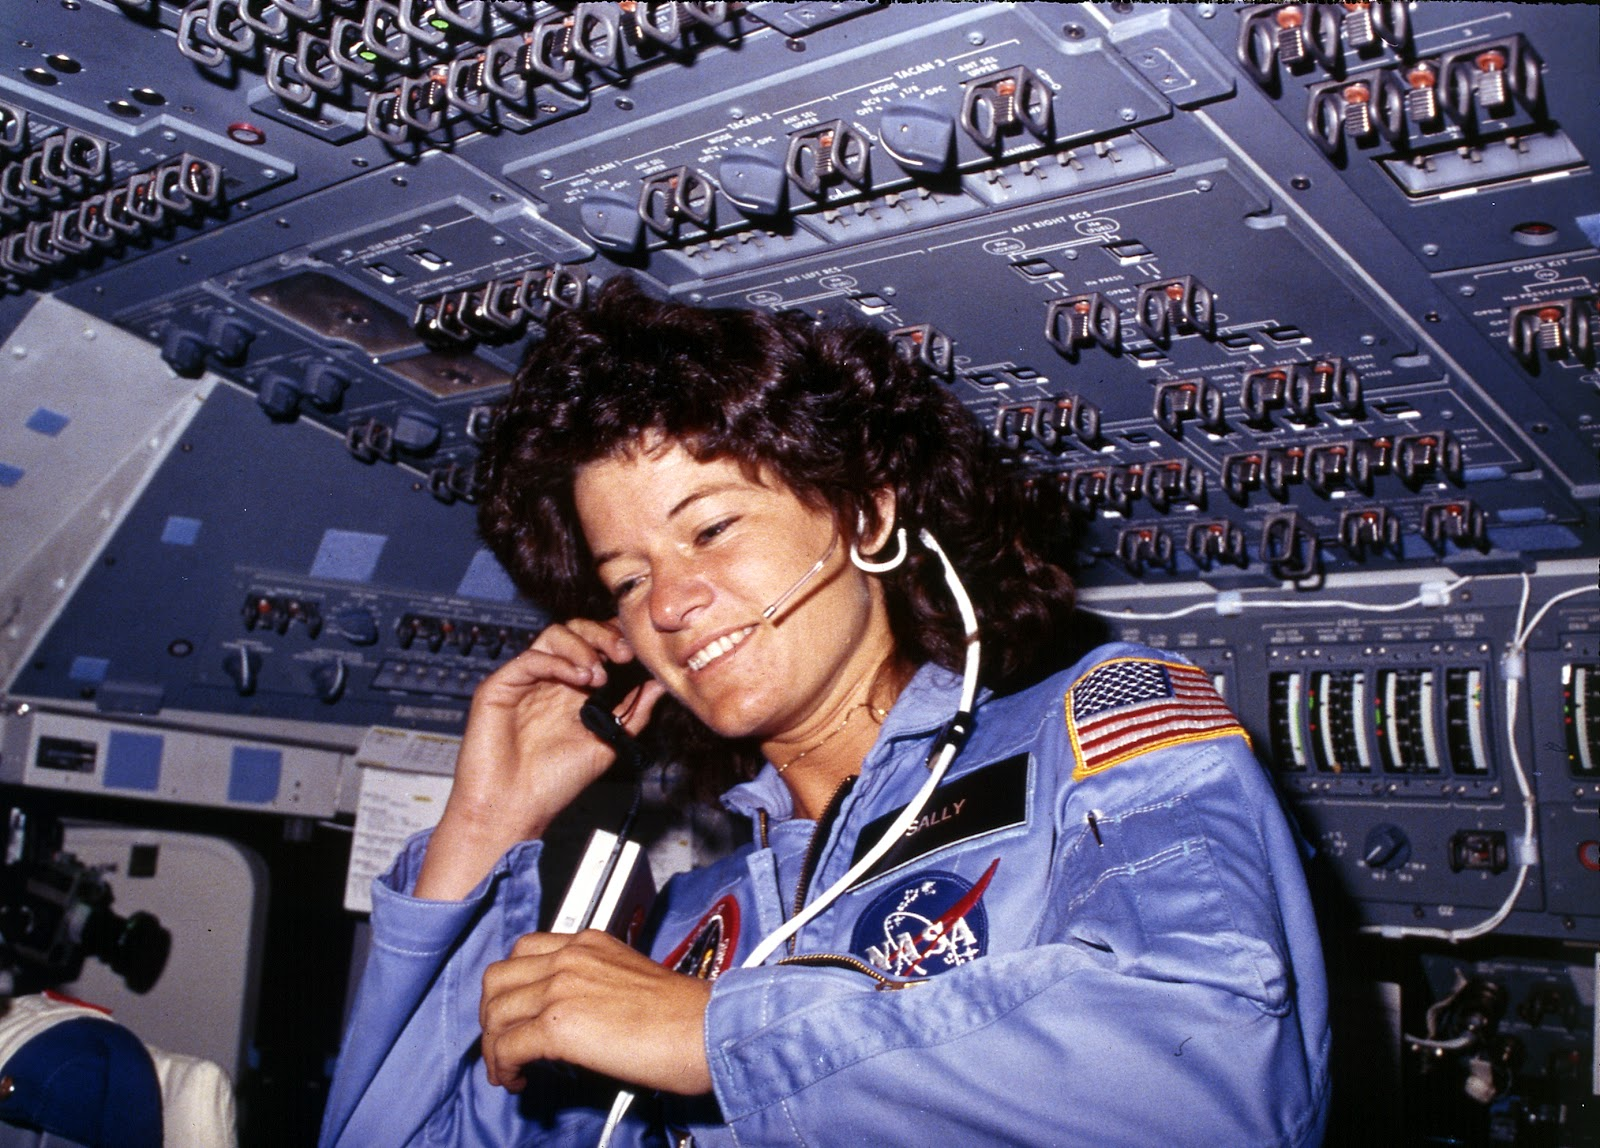 nasa sally ride women - photo #4